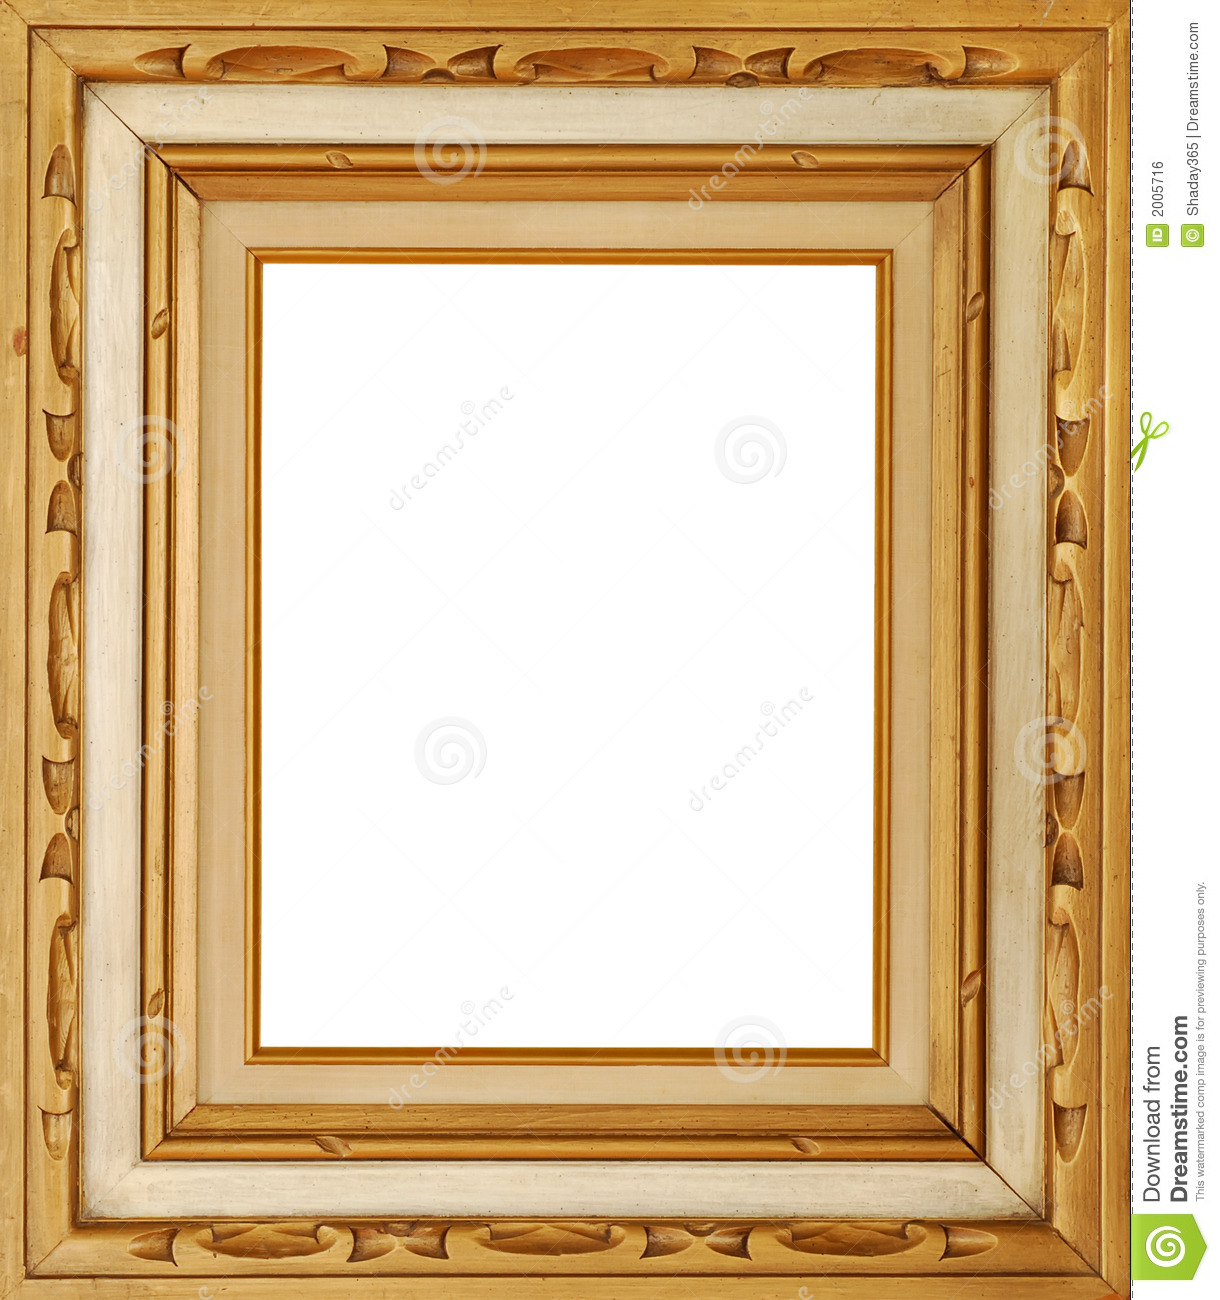 Fantastic Free Photo Frame Images - Picture Frame Ideas ...